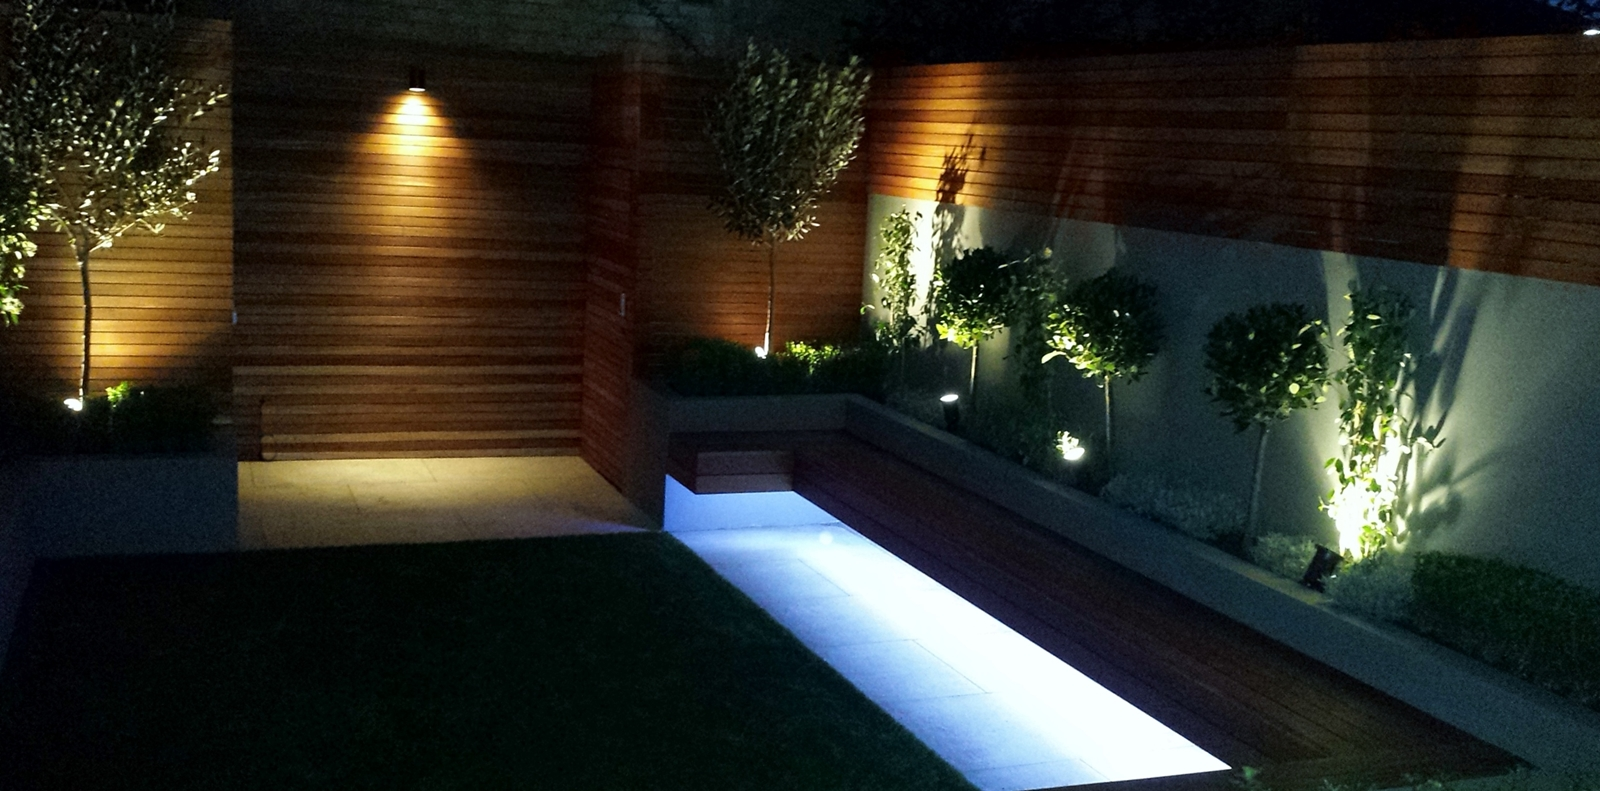 1000 images about ideas para el hogar on pinterest Led strip lighting ideas